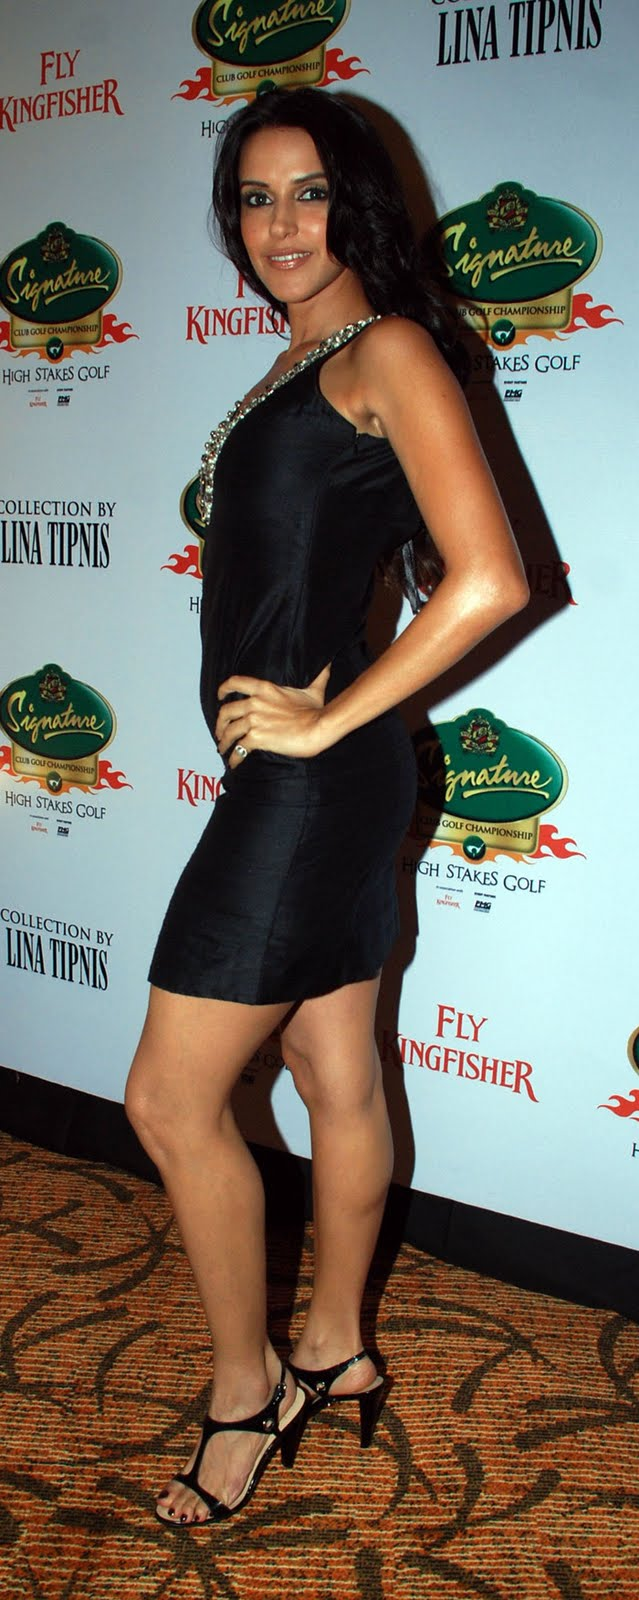 Neha Dhupia in a Short Black Skirt Promoting Signature Club Golf]